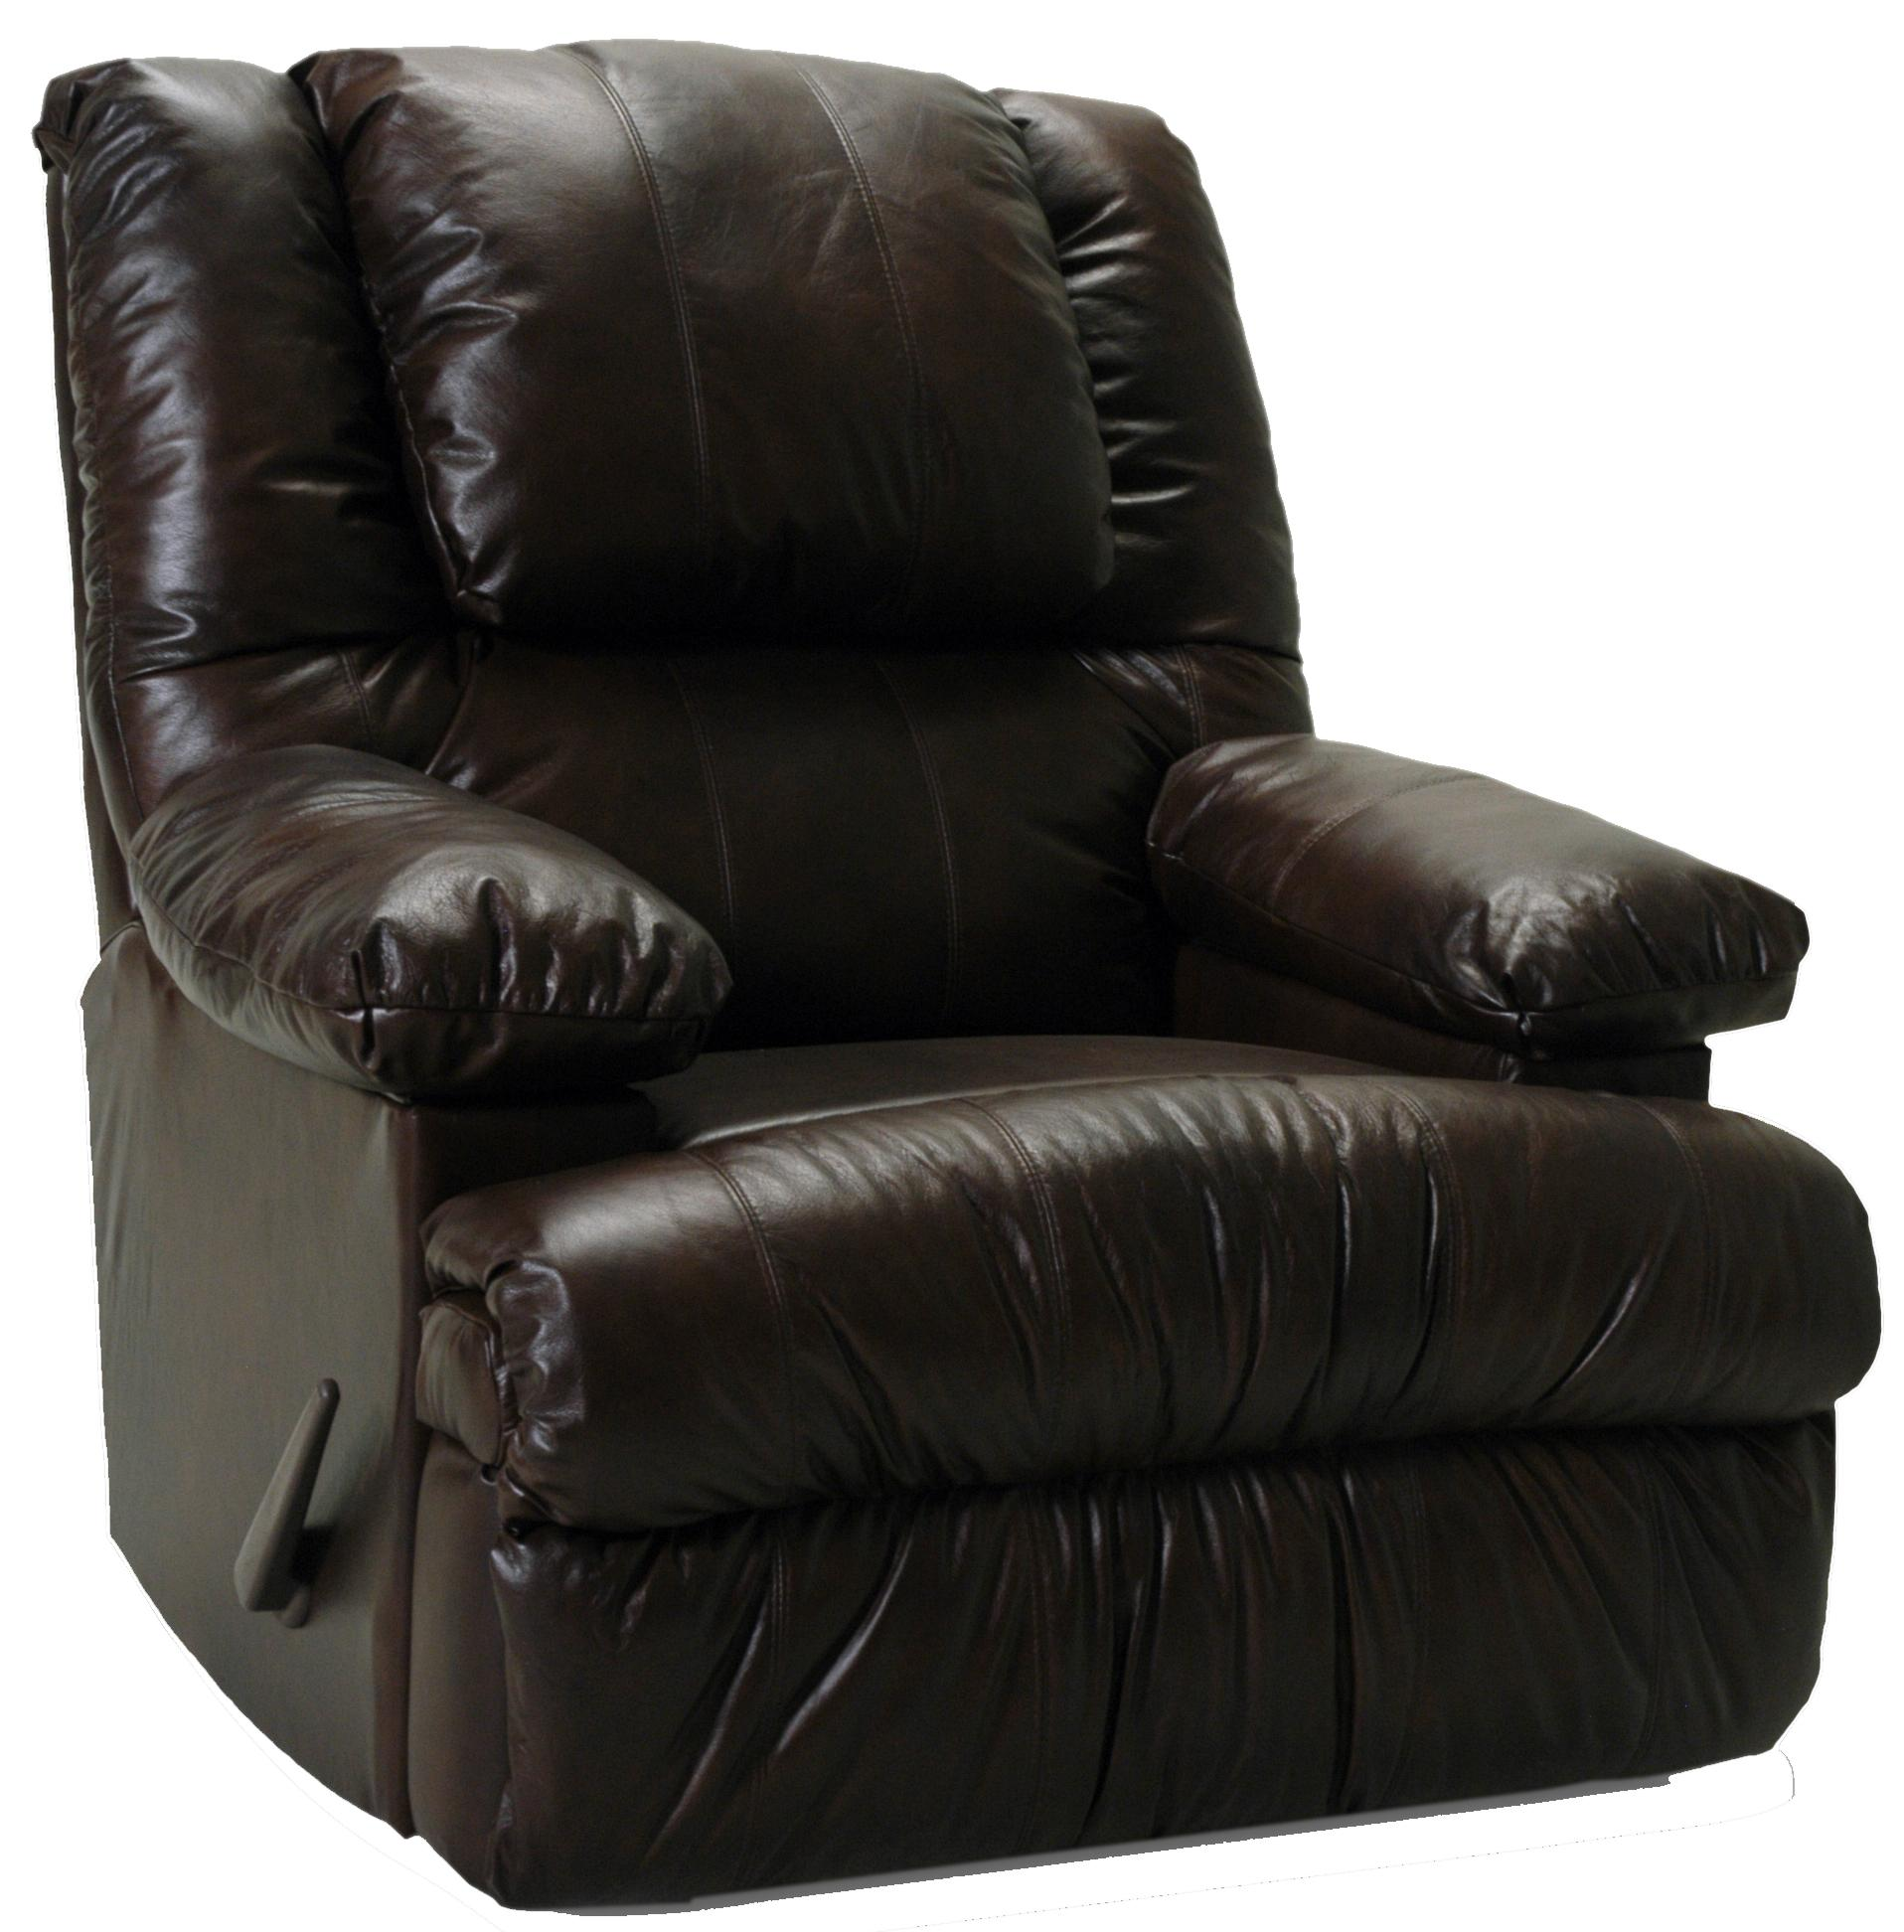 Clayton Rocker Recliner with Massage and Fridge by Franklin at Lagniappe Home Store